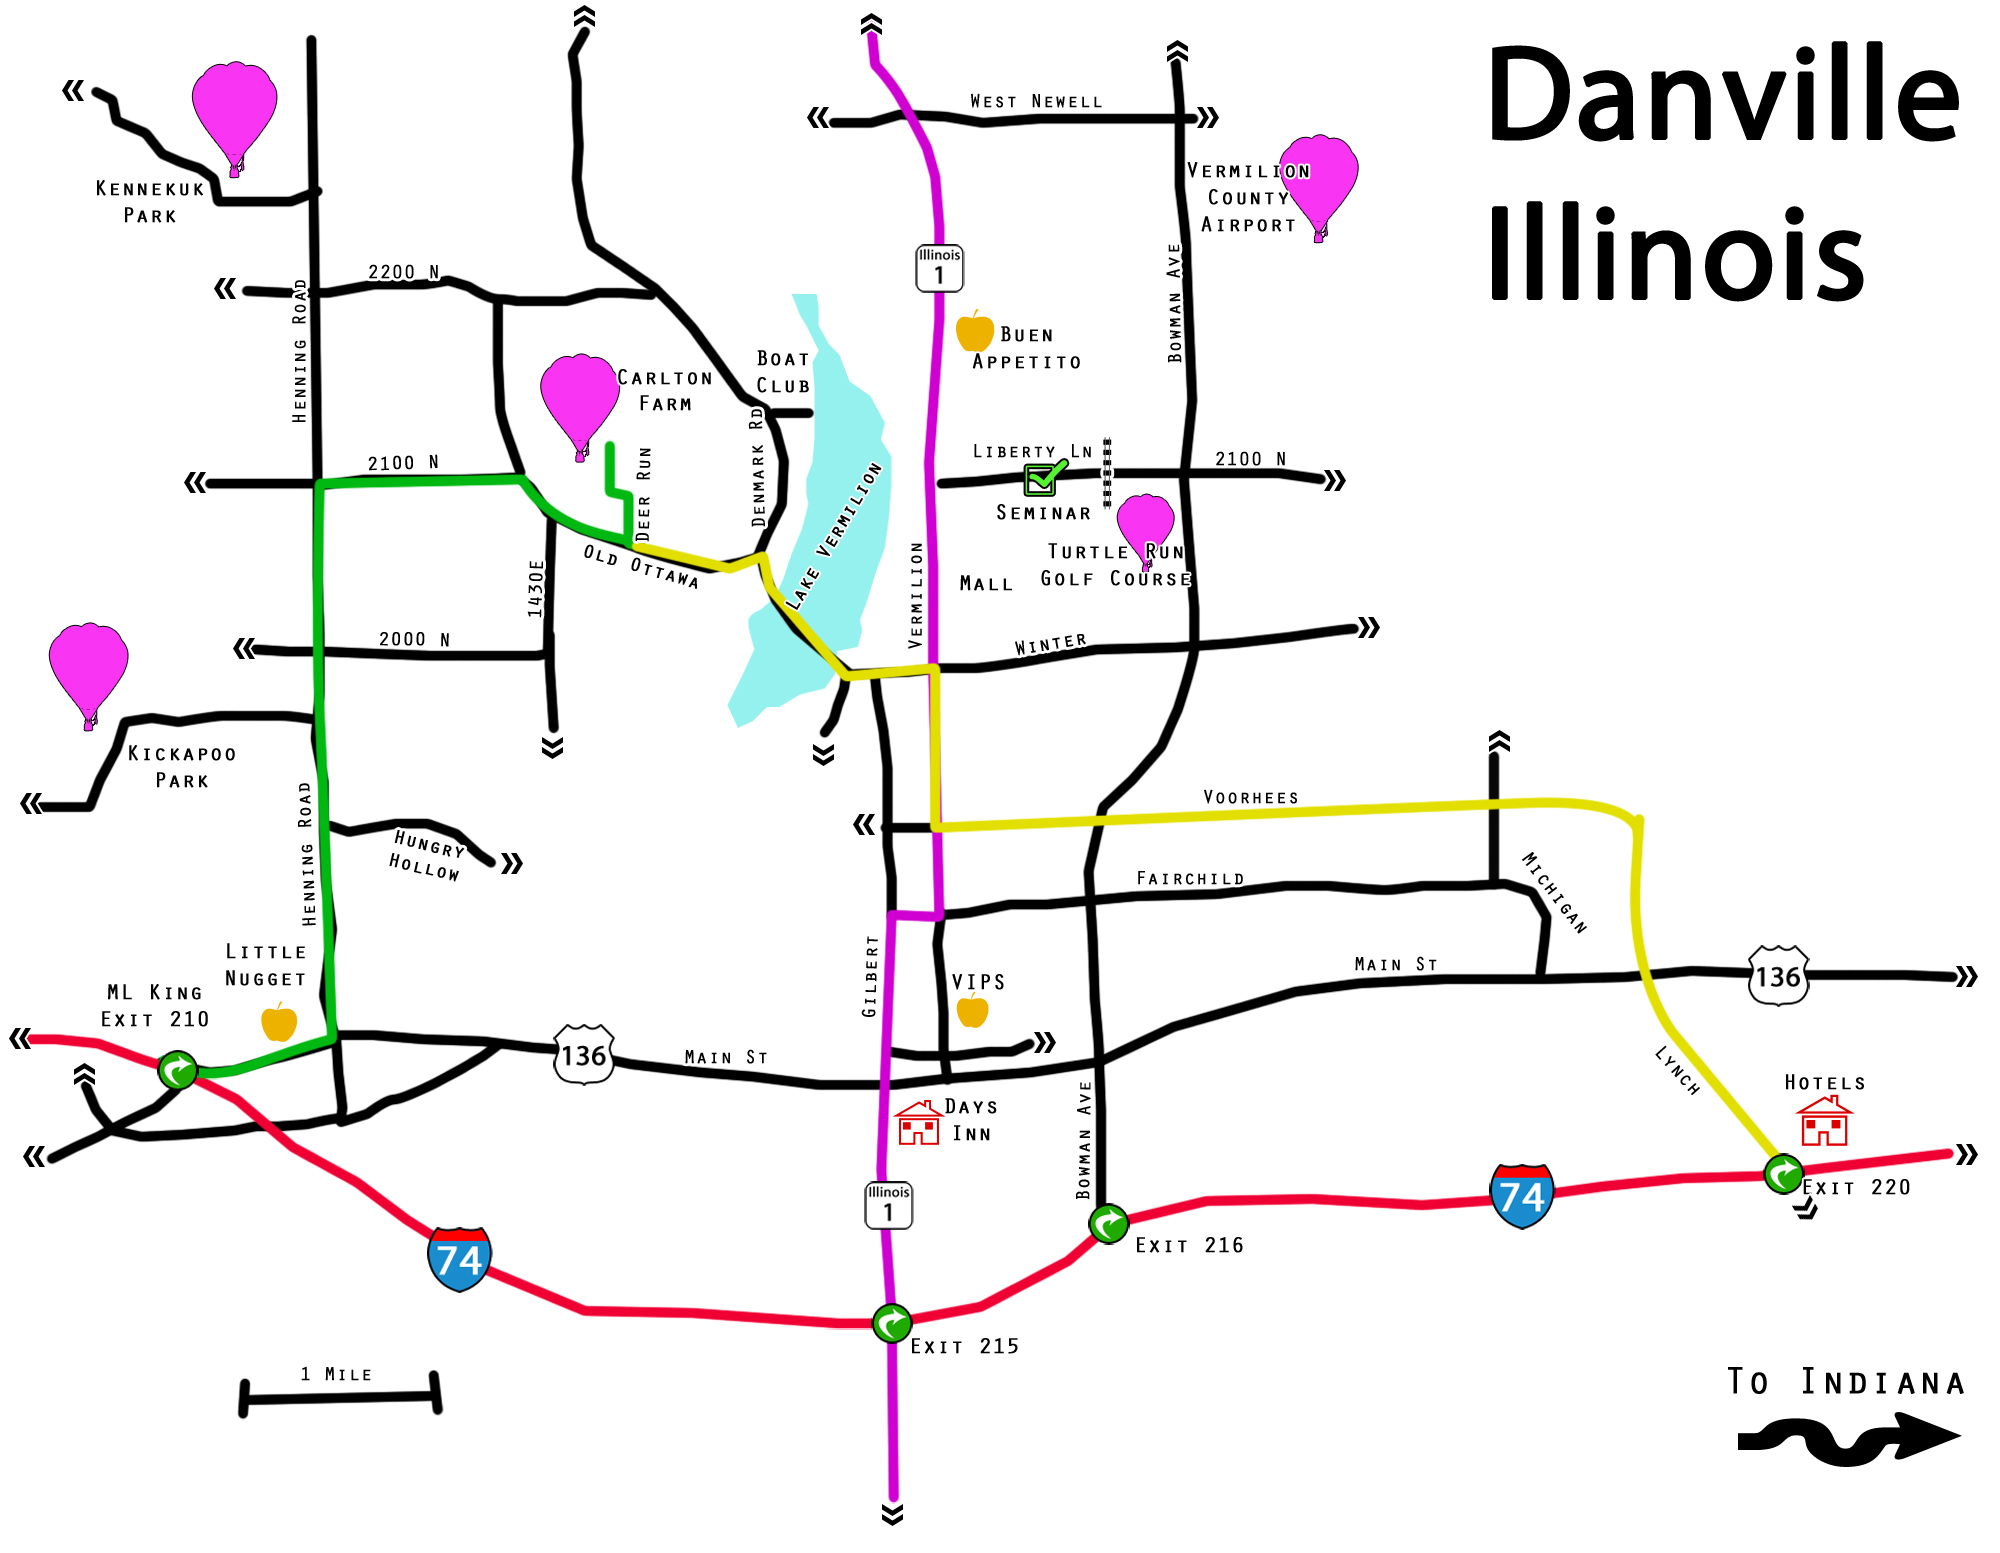 map of dekalb county with Danville Illinois Map on Atlanta Ga Area Map Search For Properties In Georgia furthermore Northwest Missouri Real Estate Maps Links as well 361127943579 furthermore Decatur also Danville Illinois Map.